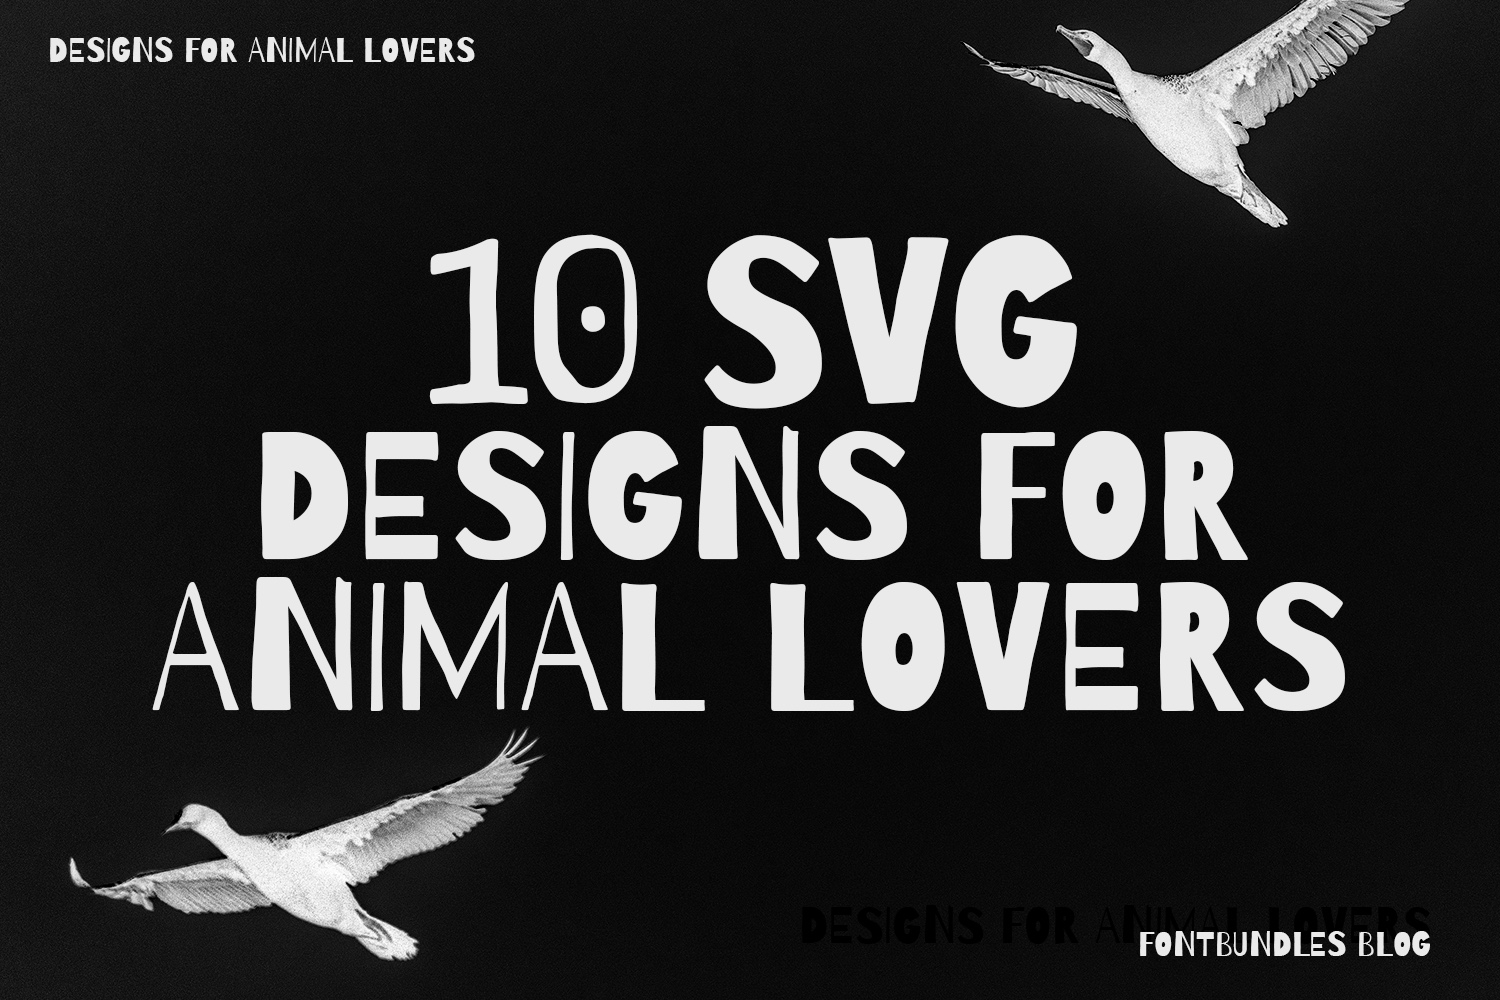 10 SVG Designs for Animal Lovers